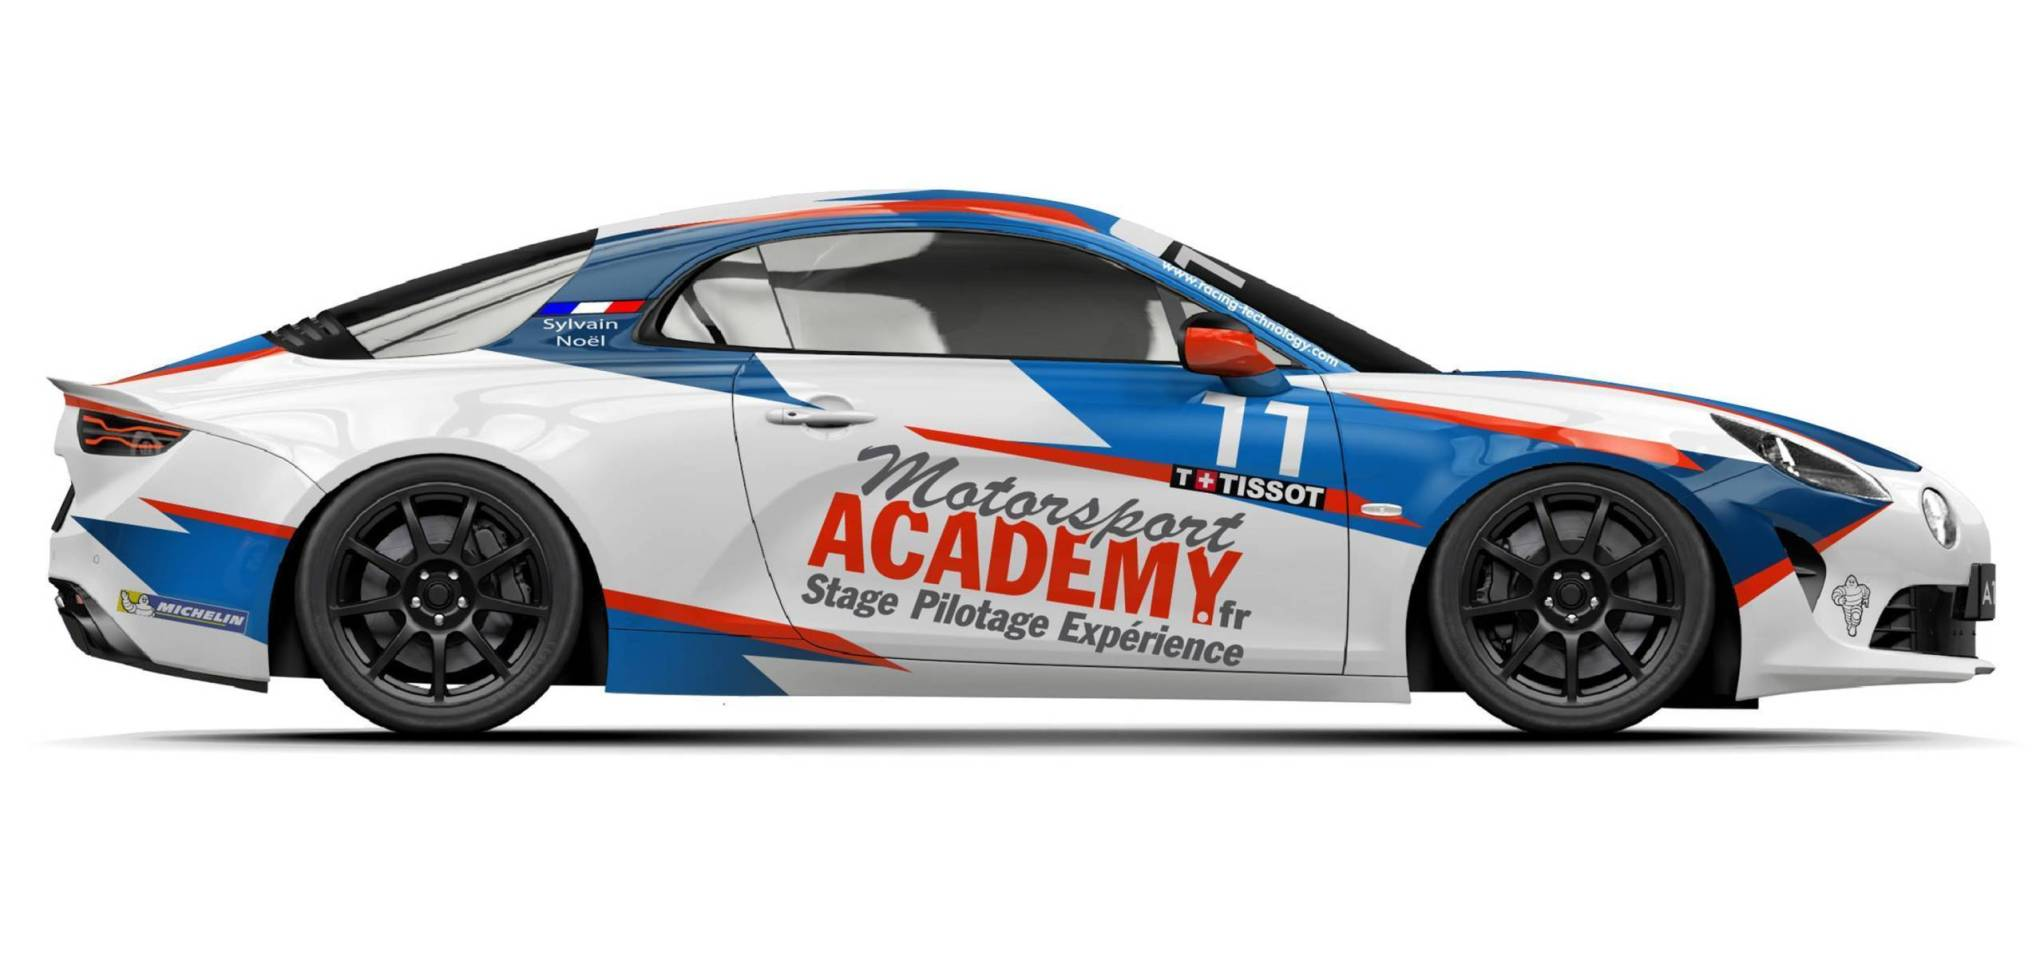 Le Team Racing Technology engagera deux Alpine A110 Cup dans le championnat Alpine Elf Europa Cup.